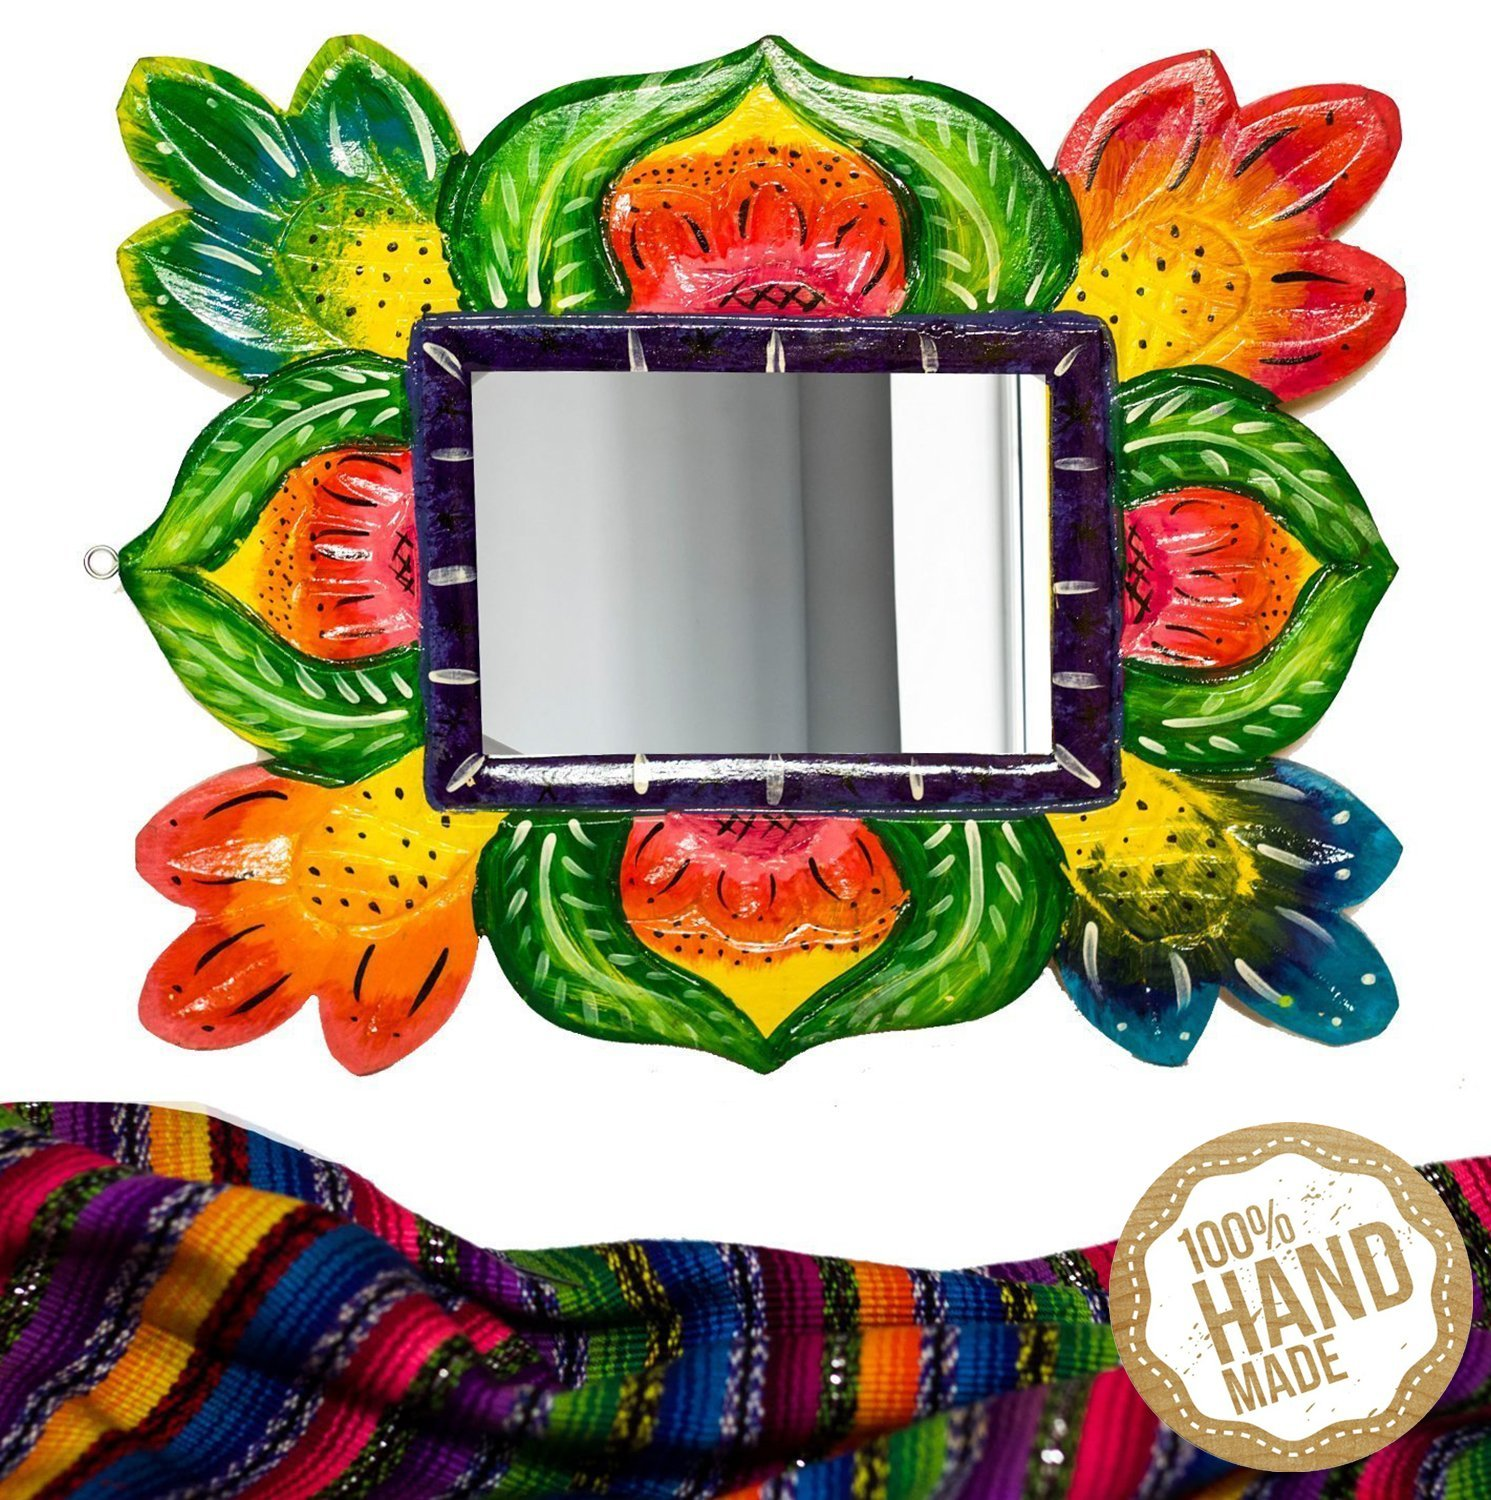 Mirror Wooden Wall Art Decor from Guatemala. Hand Carved & Made With 100% Real Wood. Perfect For Living Room & Bedroom Wall Hangings and Home Art Decorations!